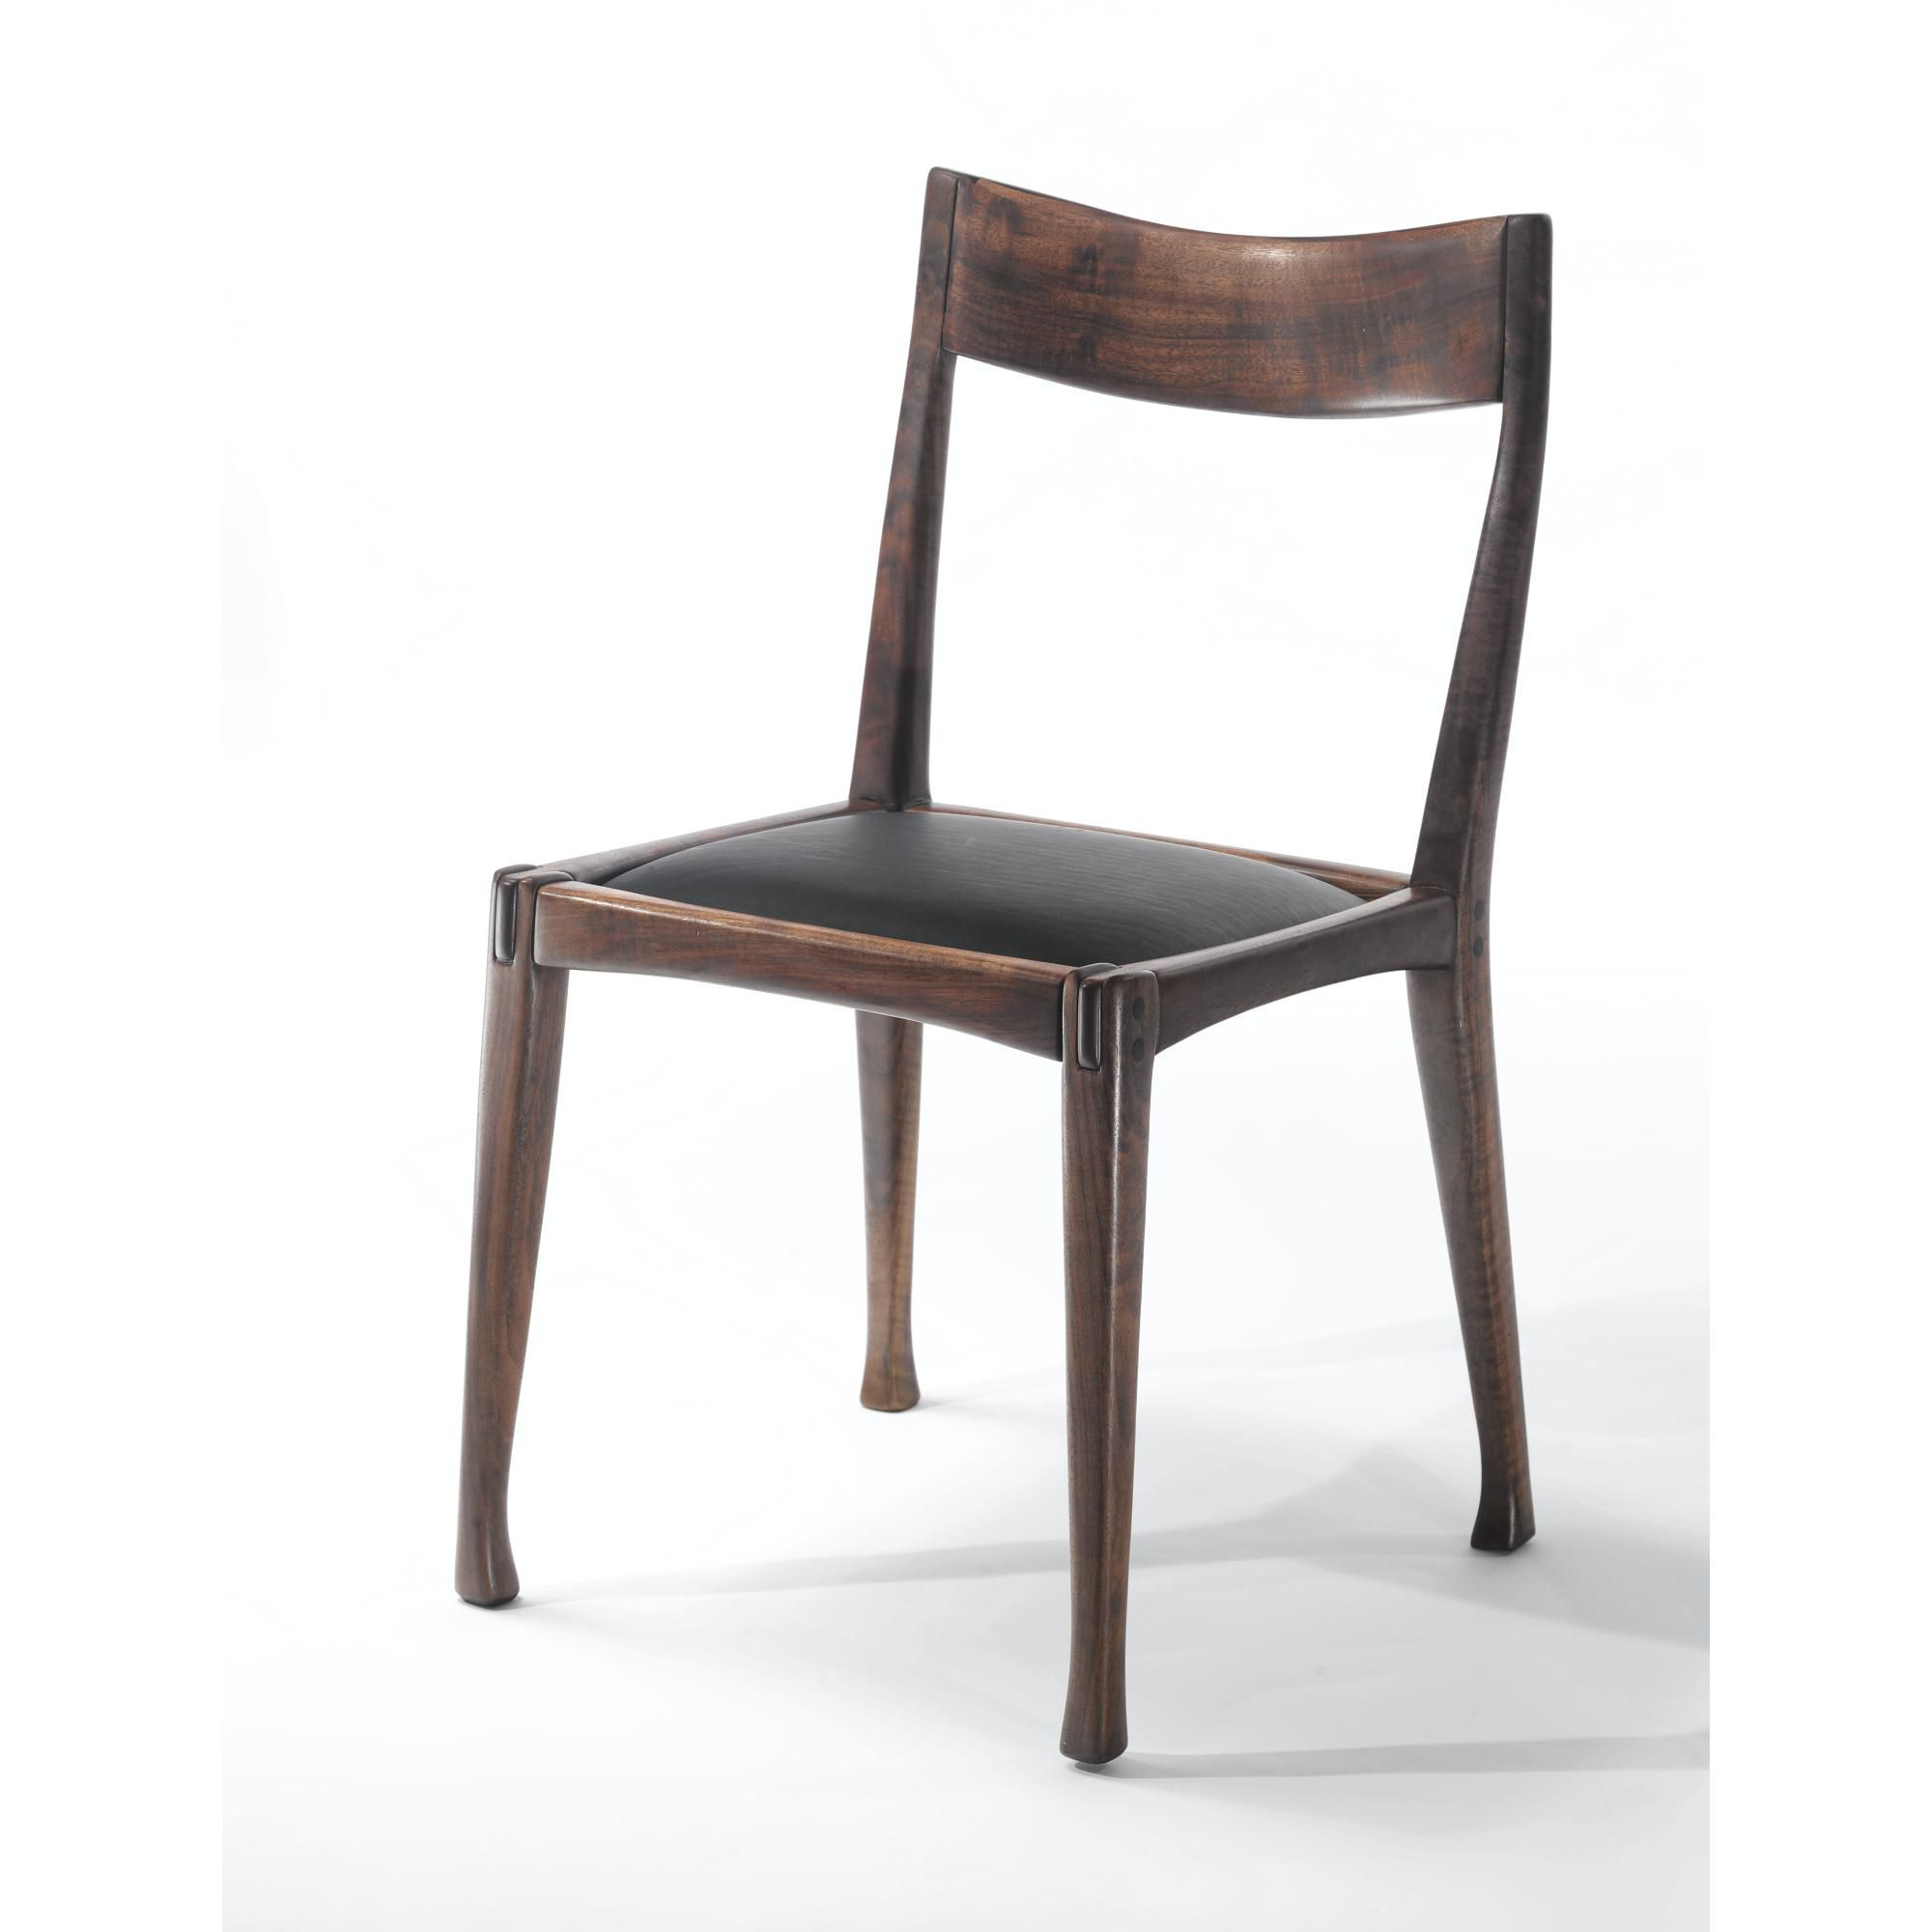 arthur espenet carpenter prototype straightback chair incised  - arthur espenet carpenter prototype straightback chair incisedespenet